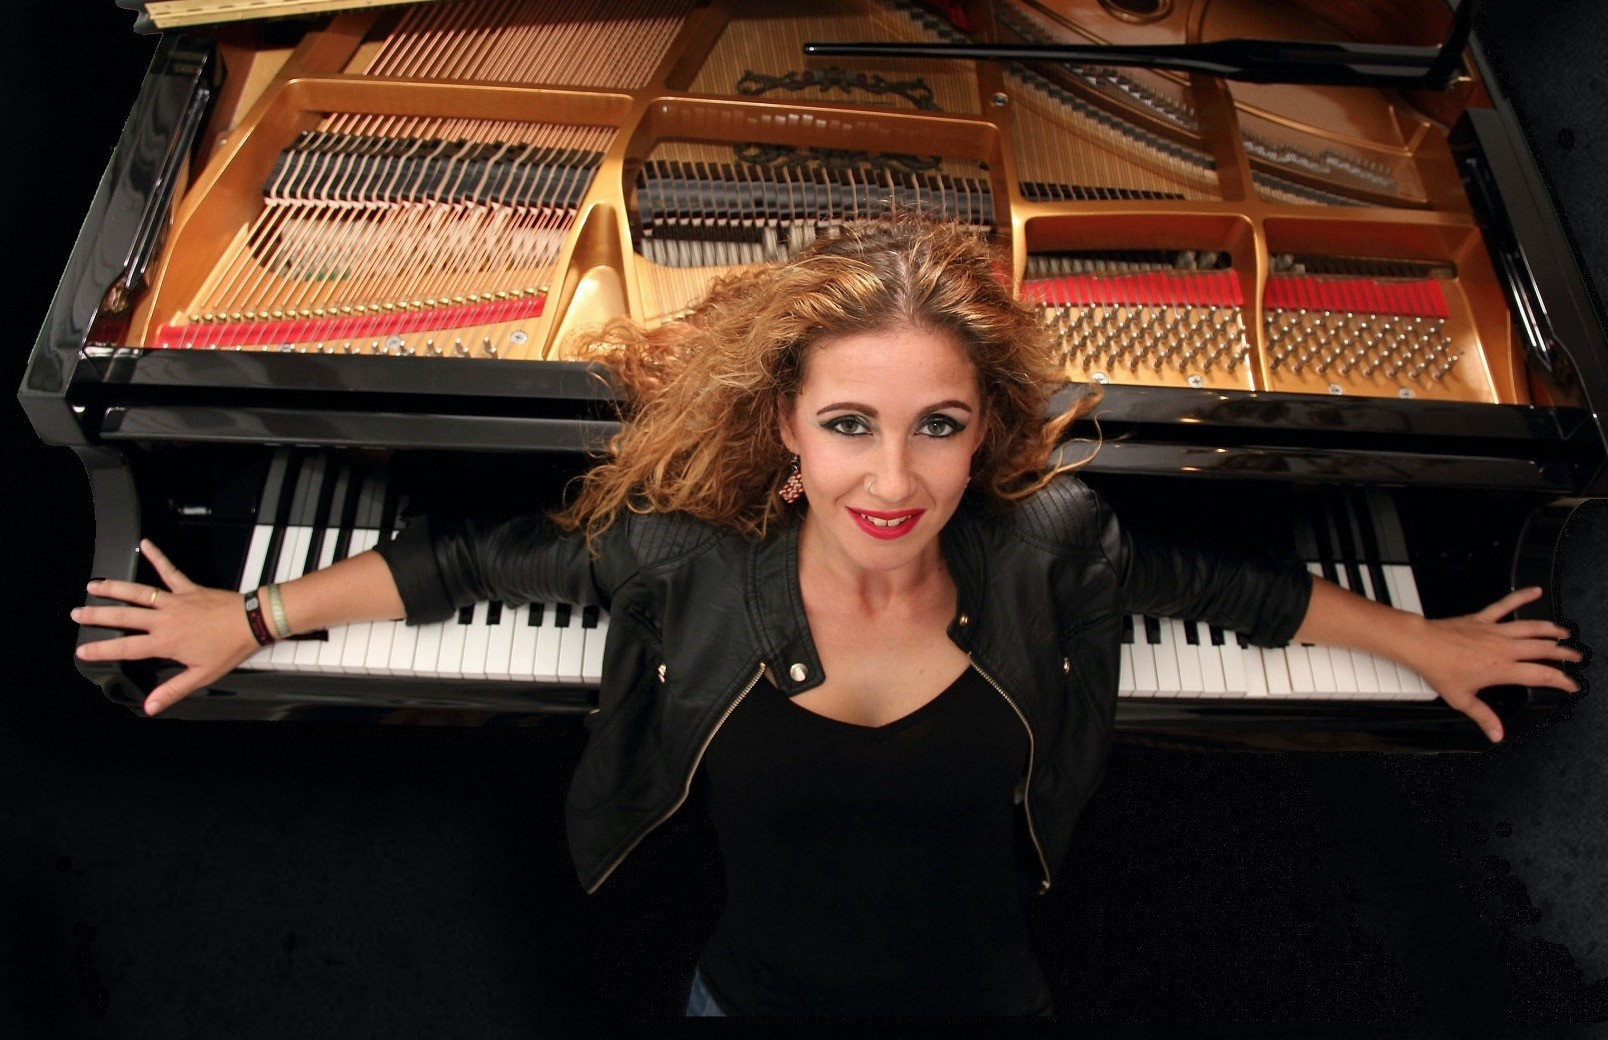 The 19th International Antalya Piano Festival will start with Laura De Los Angelesu2019s performance.